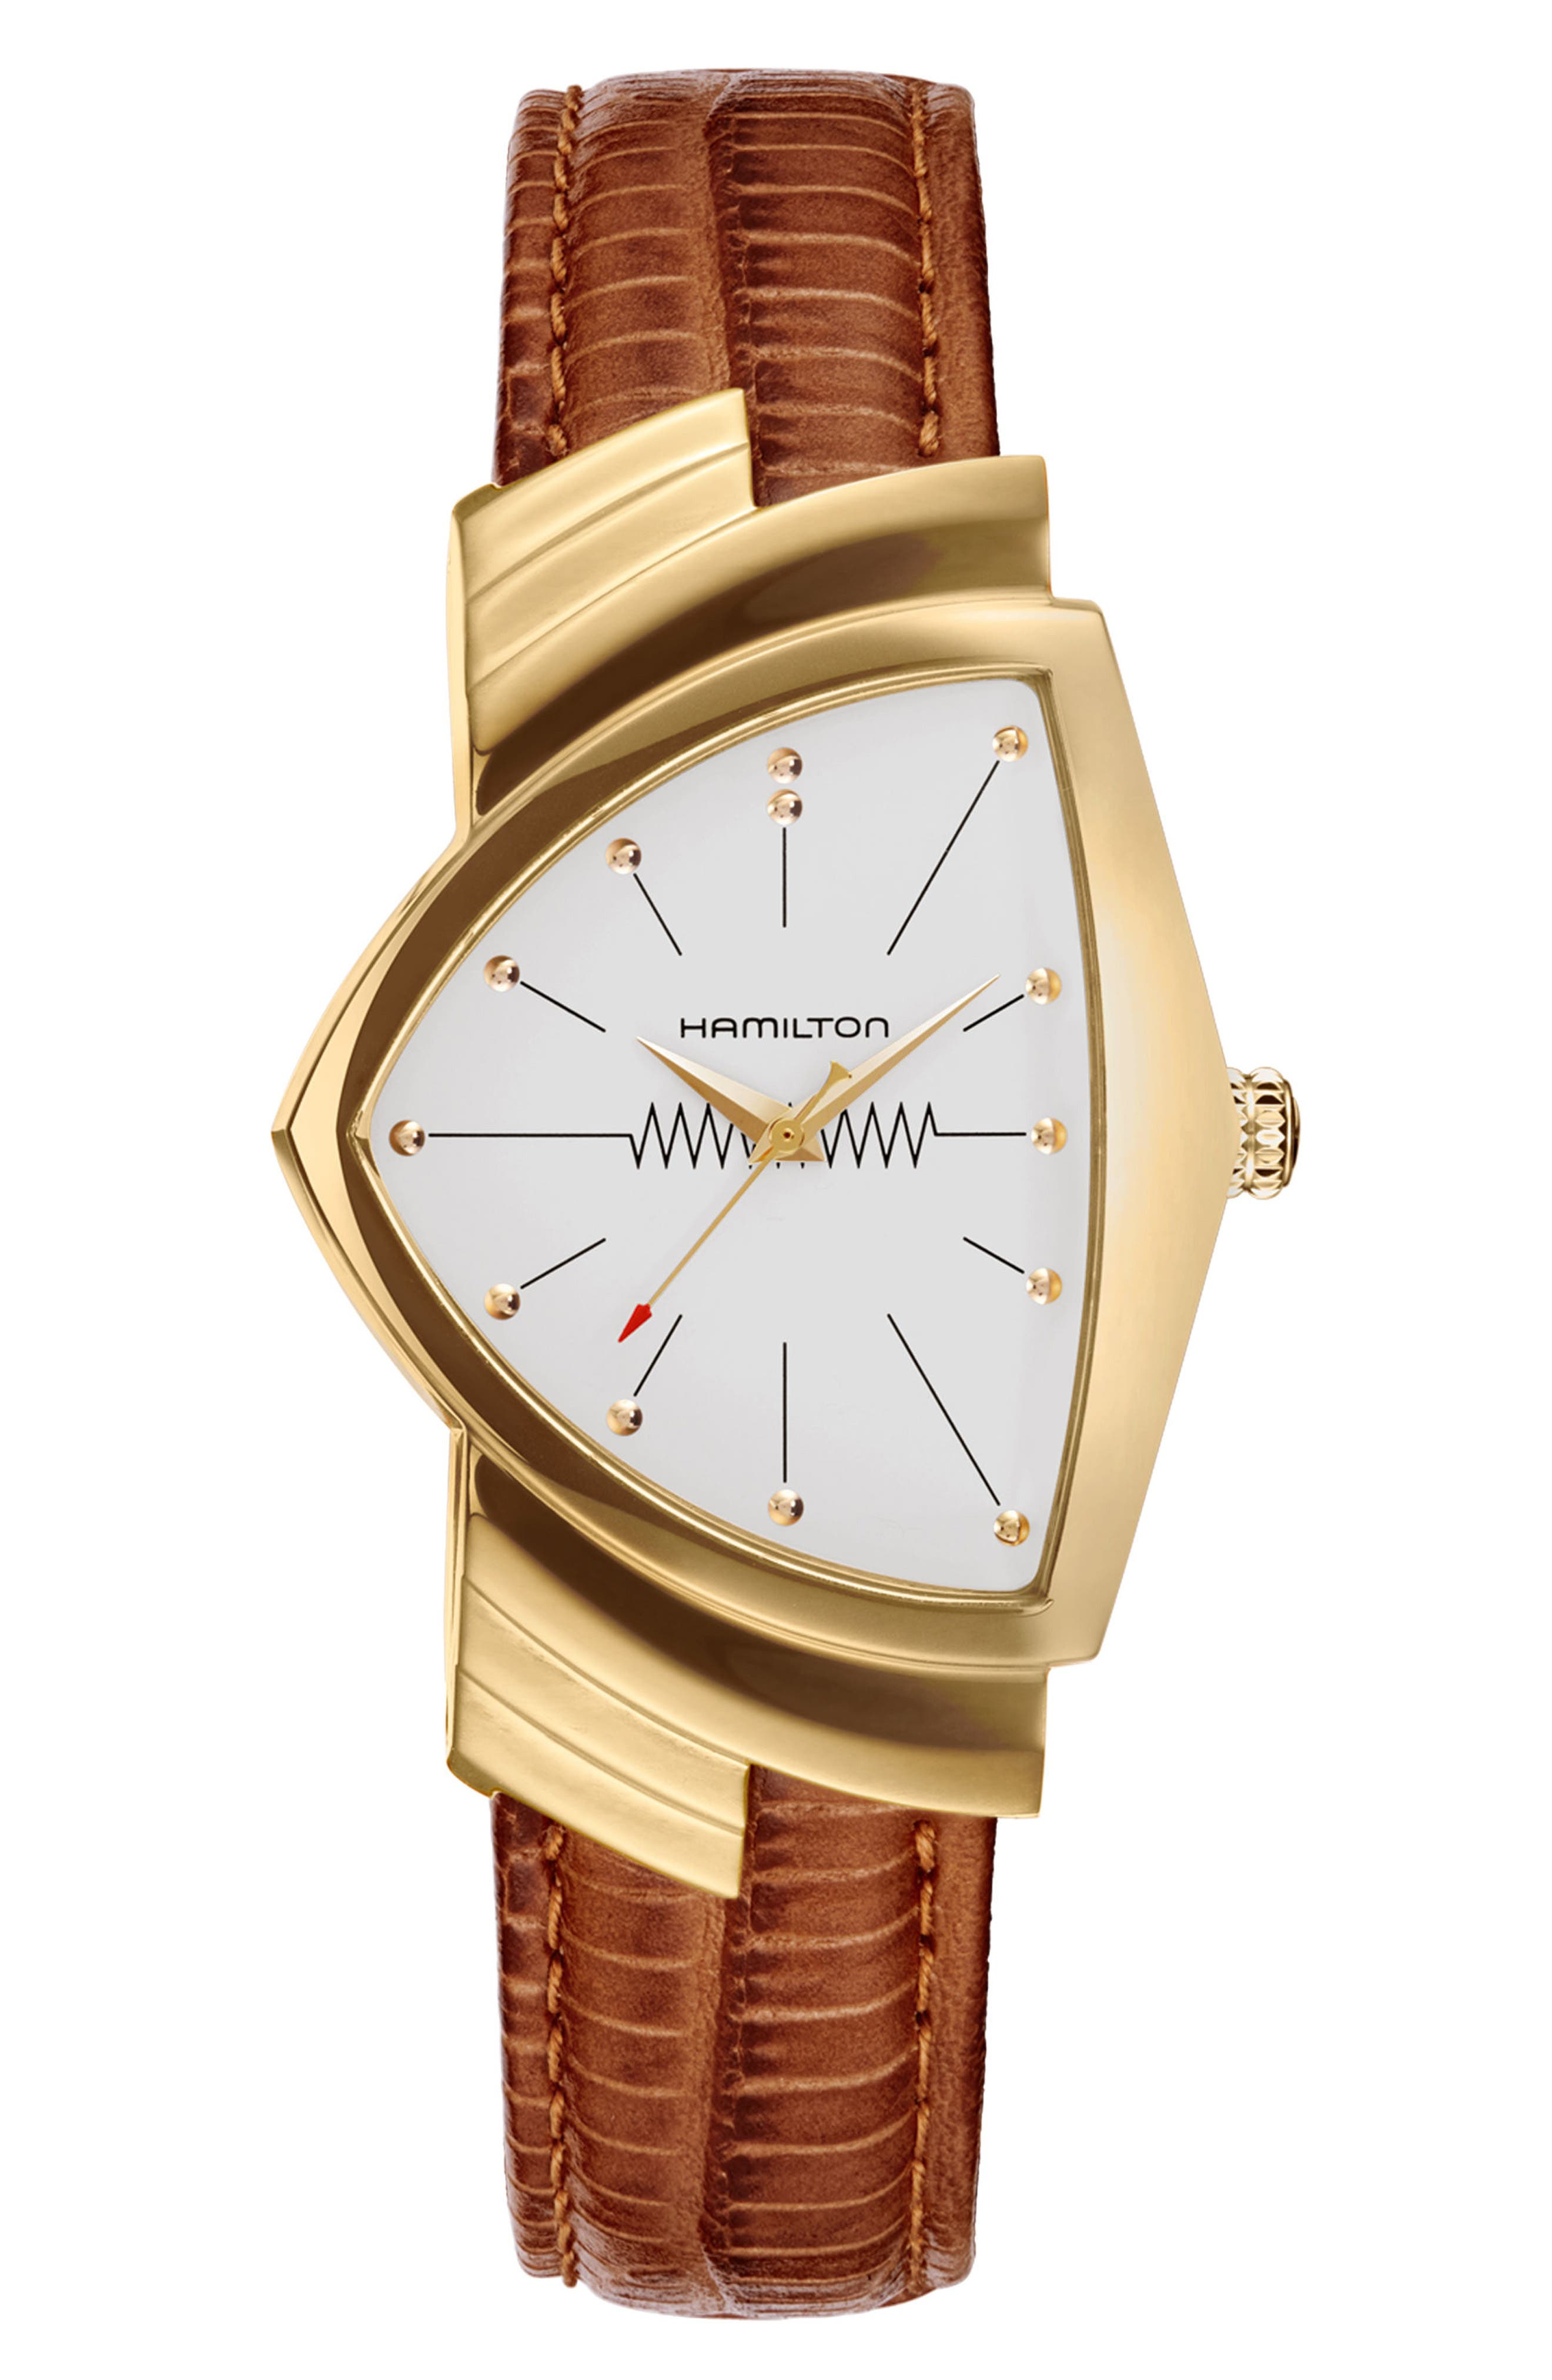 Main Image - Hamilton Ventura Leather Strap Watch, 32mm x 50mm